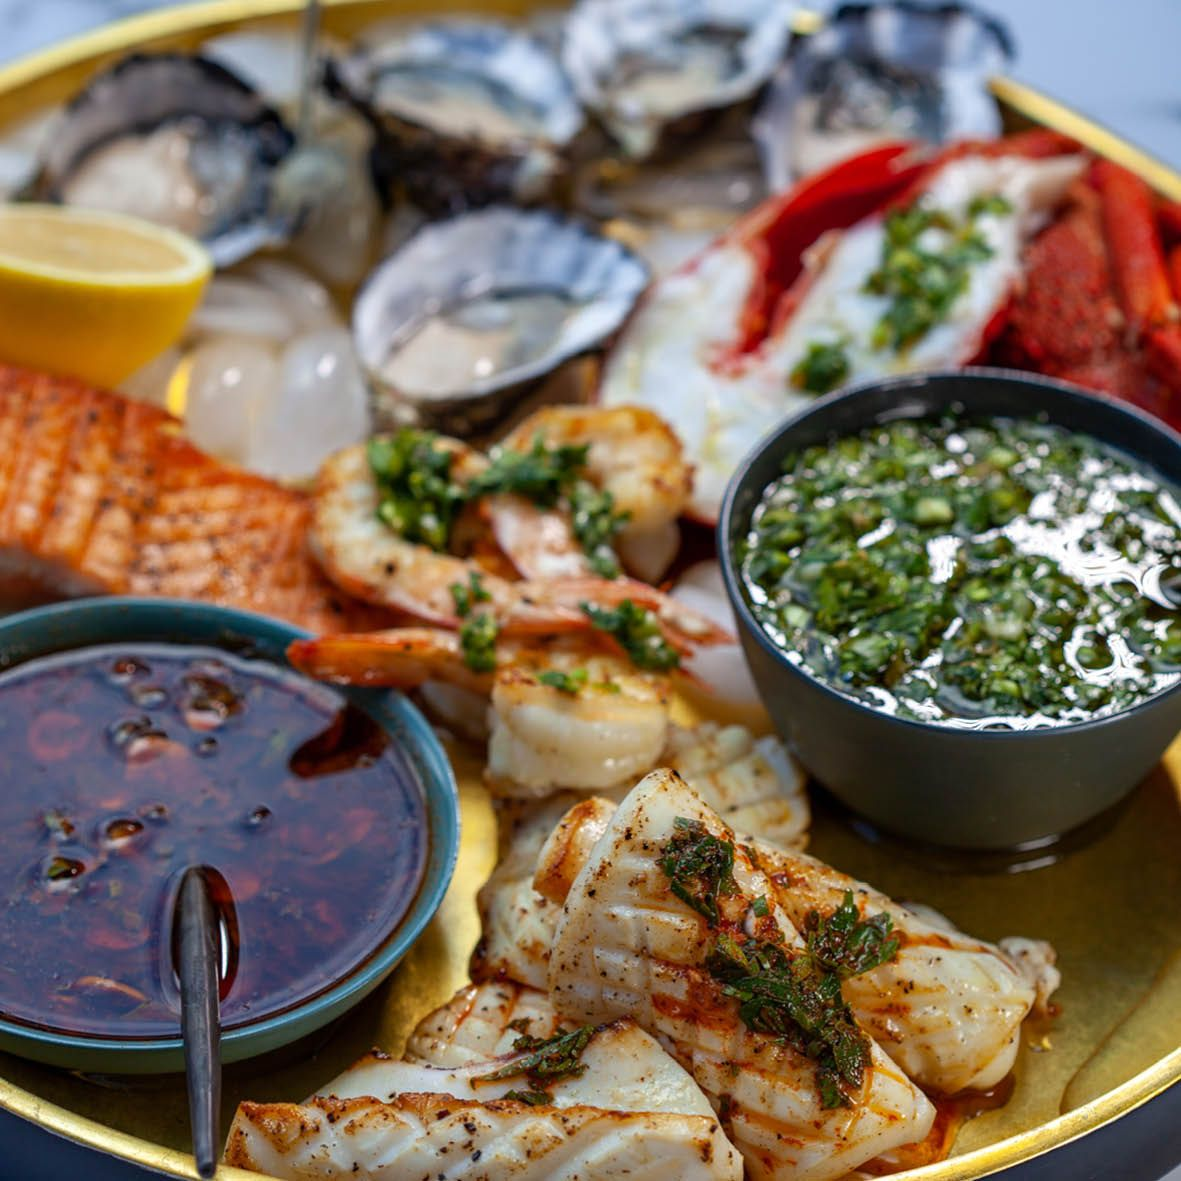 Seafood_Platter_with_Coriander-Tarragon_Salsa_Verde_and_Lemon-Paprika_Dressing.jpg